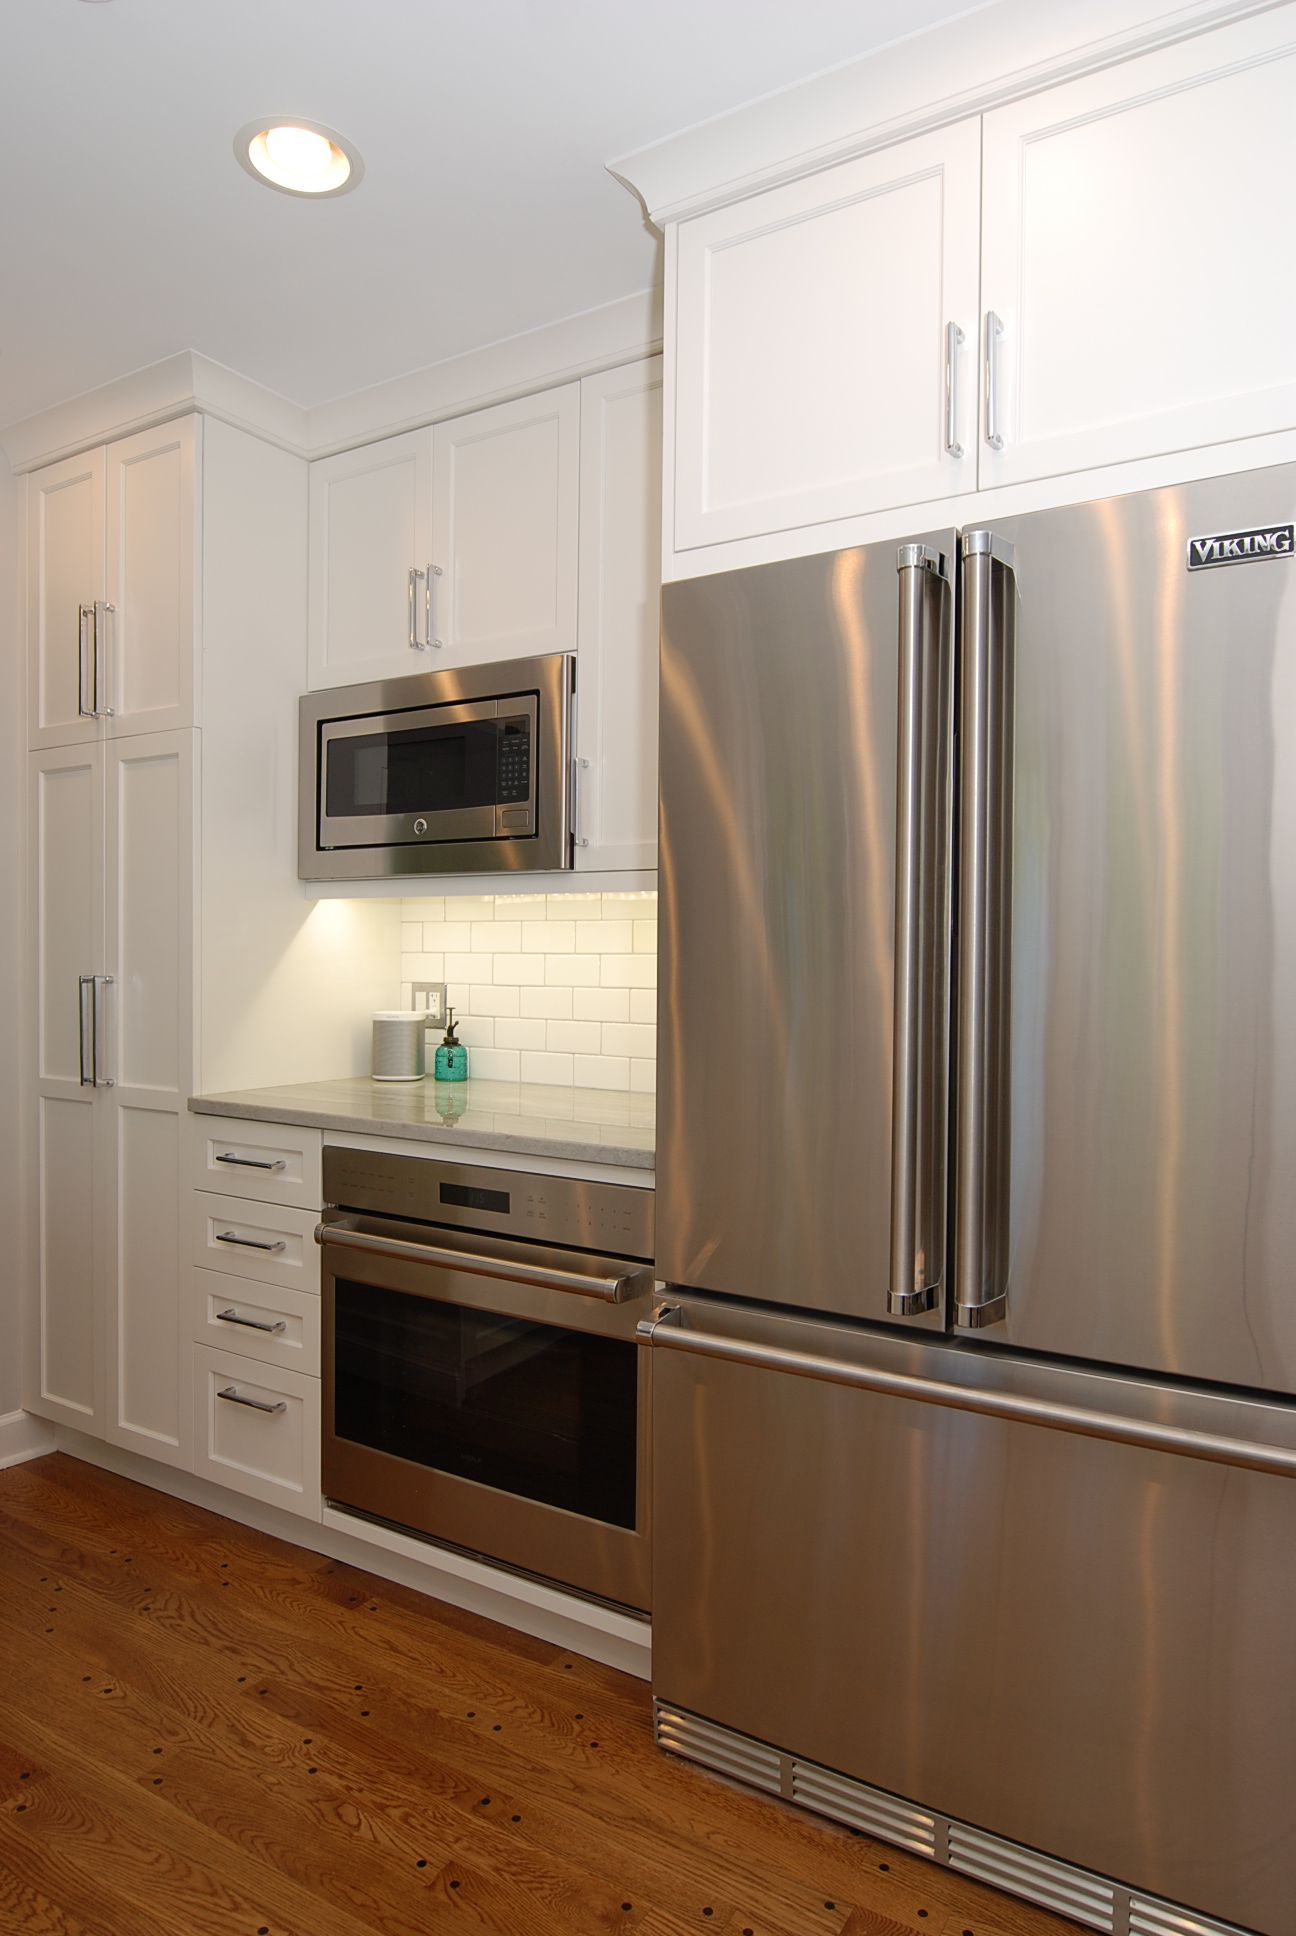 Ordinaire Viking Refrigerator, Counter Top Depth Refrigerator, Built In Microwave, GE  Spacemaker Microwave